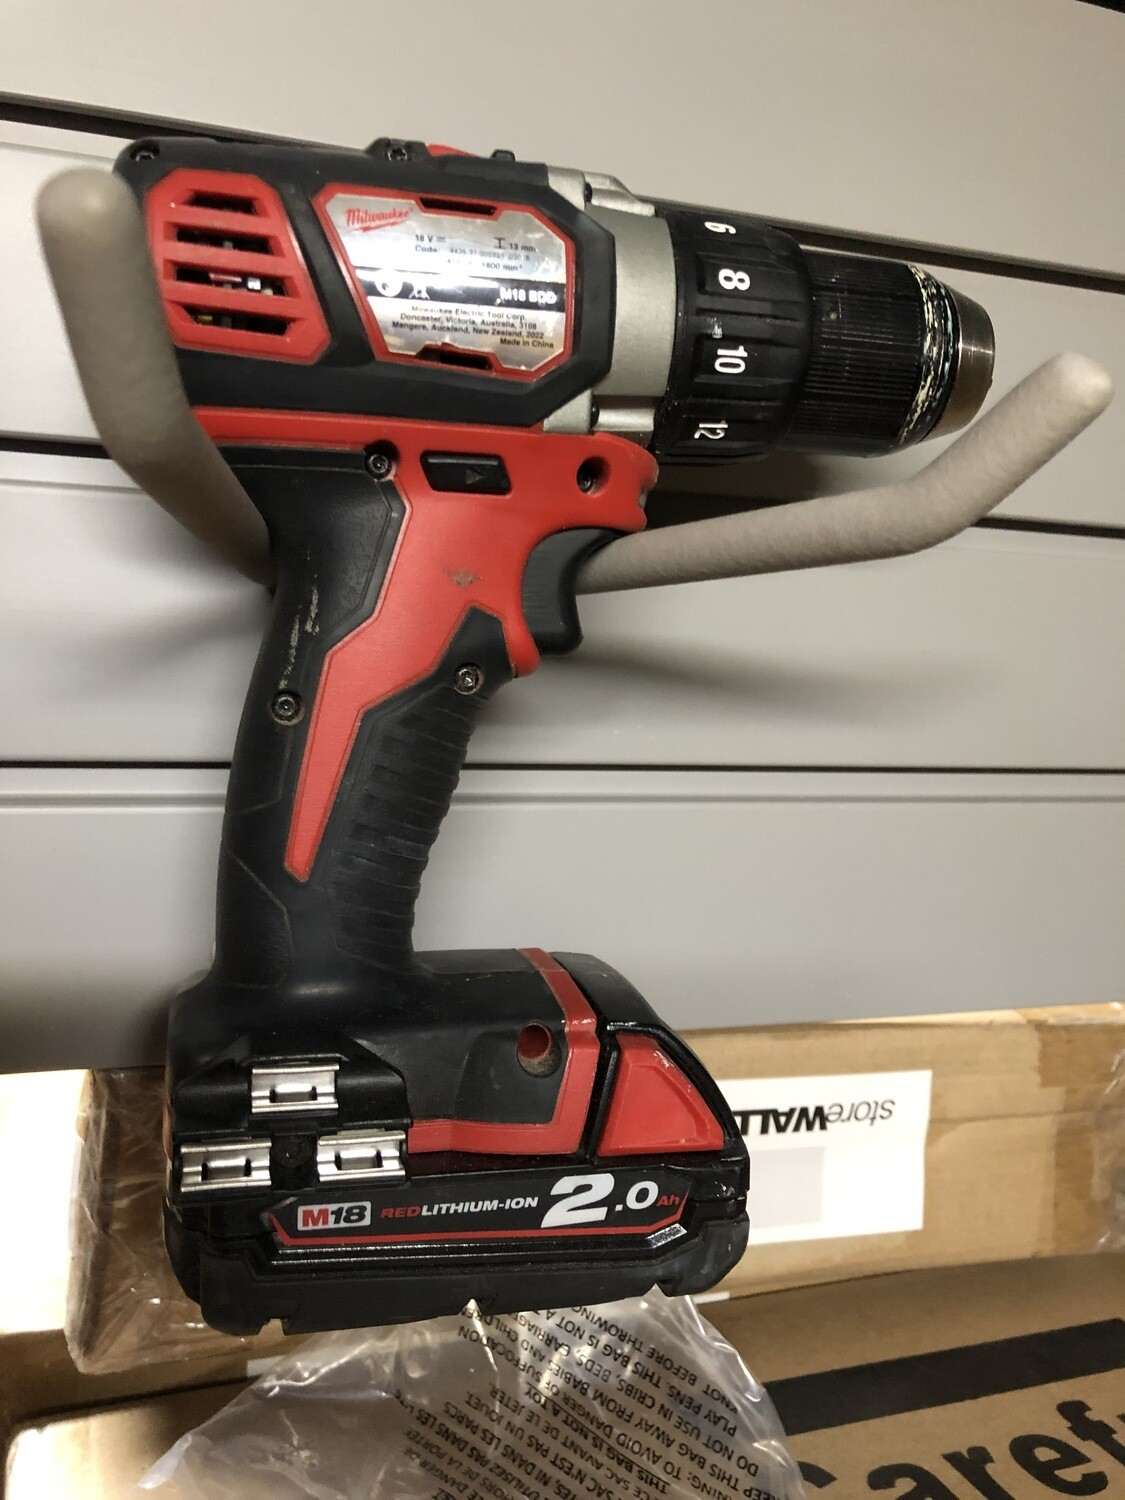 Wide Hook - power tool storage